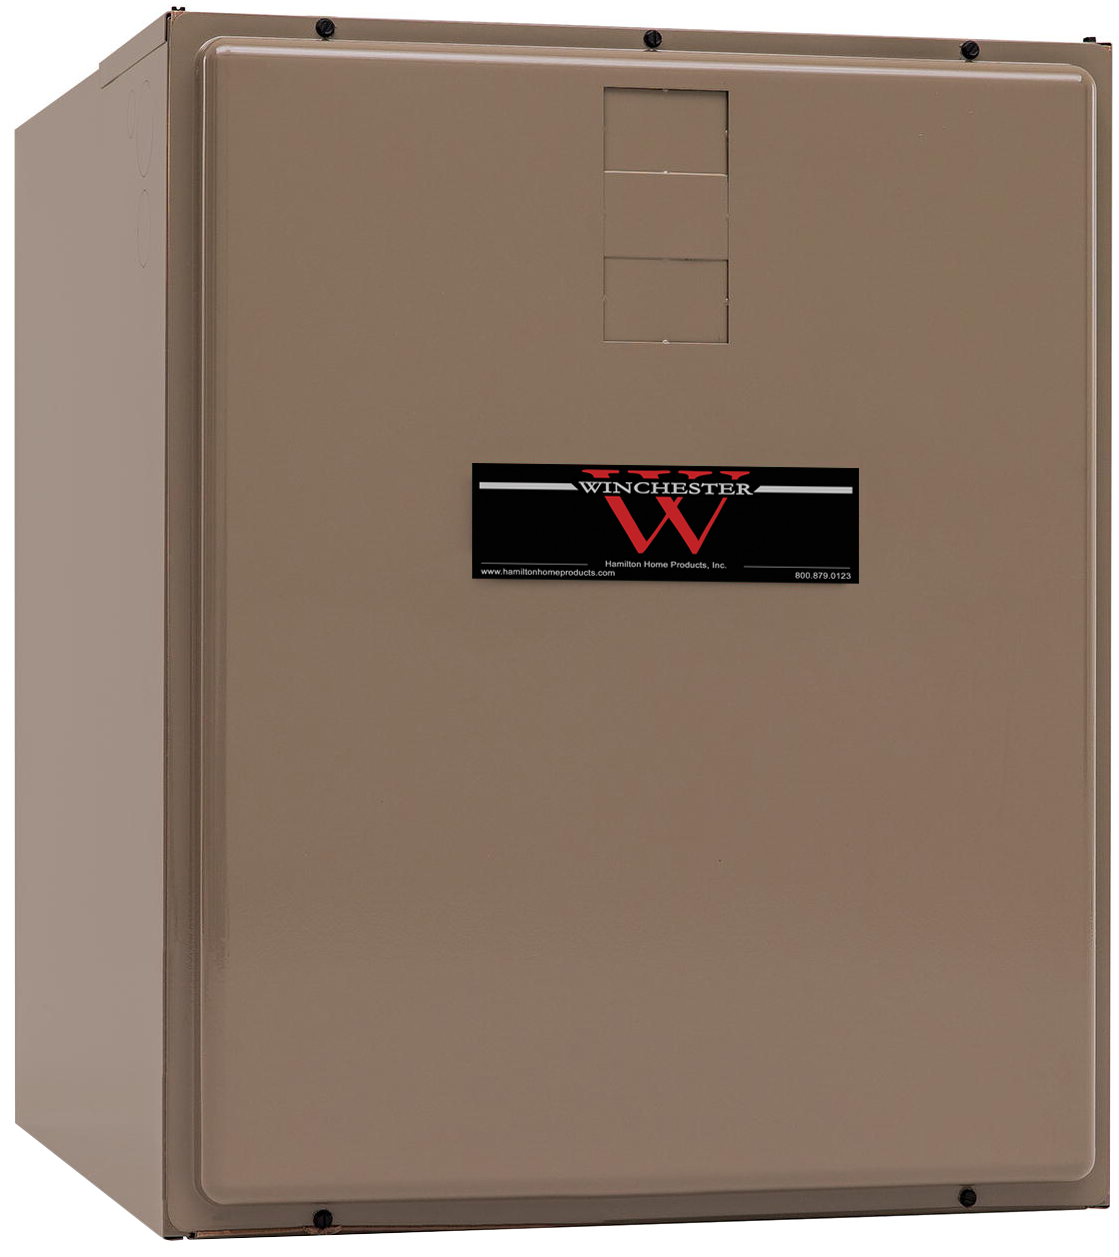 Winchester Multi Positional Air Handler Electric Furnace 10 Kw Wiring Diagram Hamilton Home Products